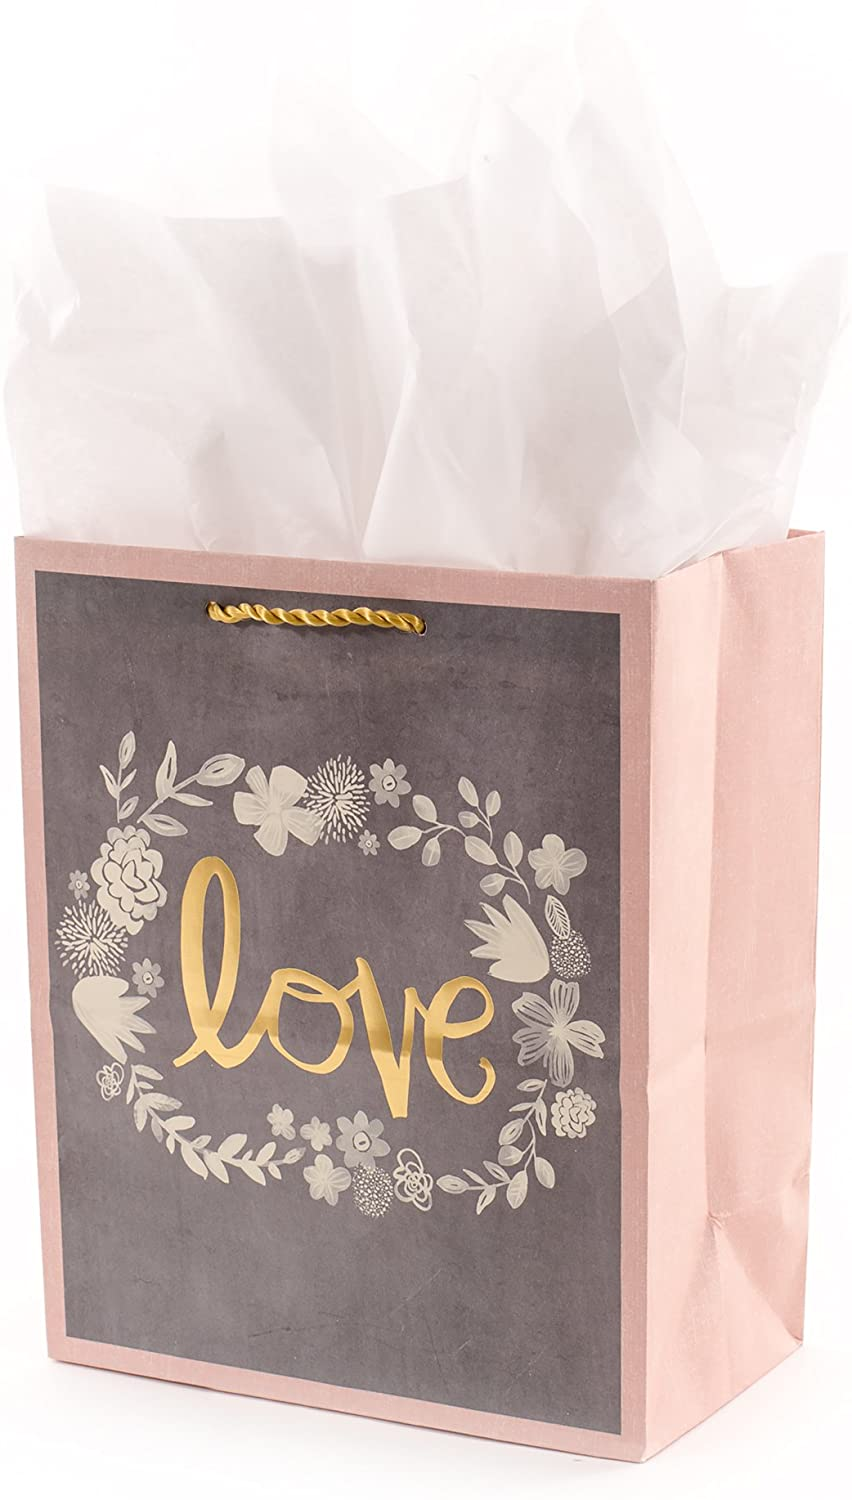 """Hallmark 9"""" Medium Gift Bag with Tissue Paper (Gray, Pink, Gold Love) for Weddings, Bridal Showers, Engagements and More"""